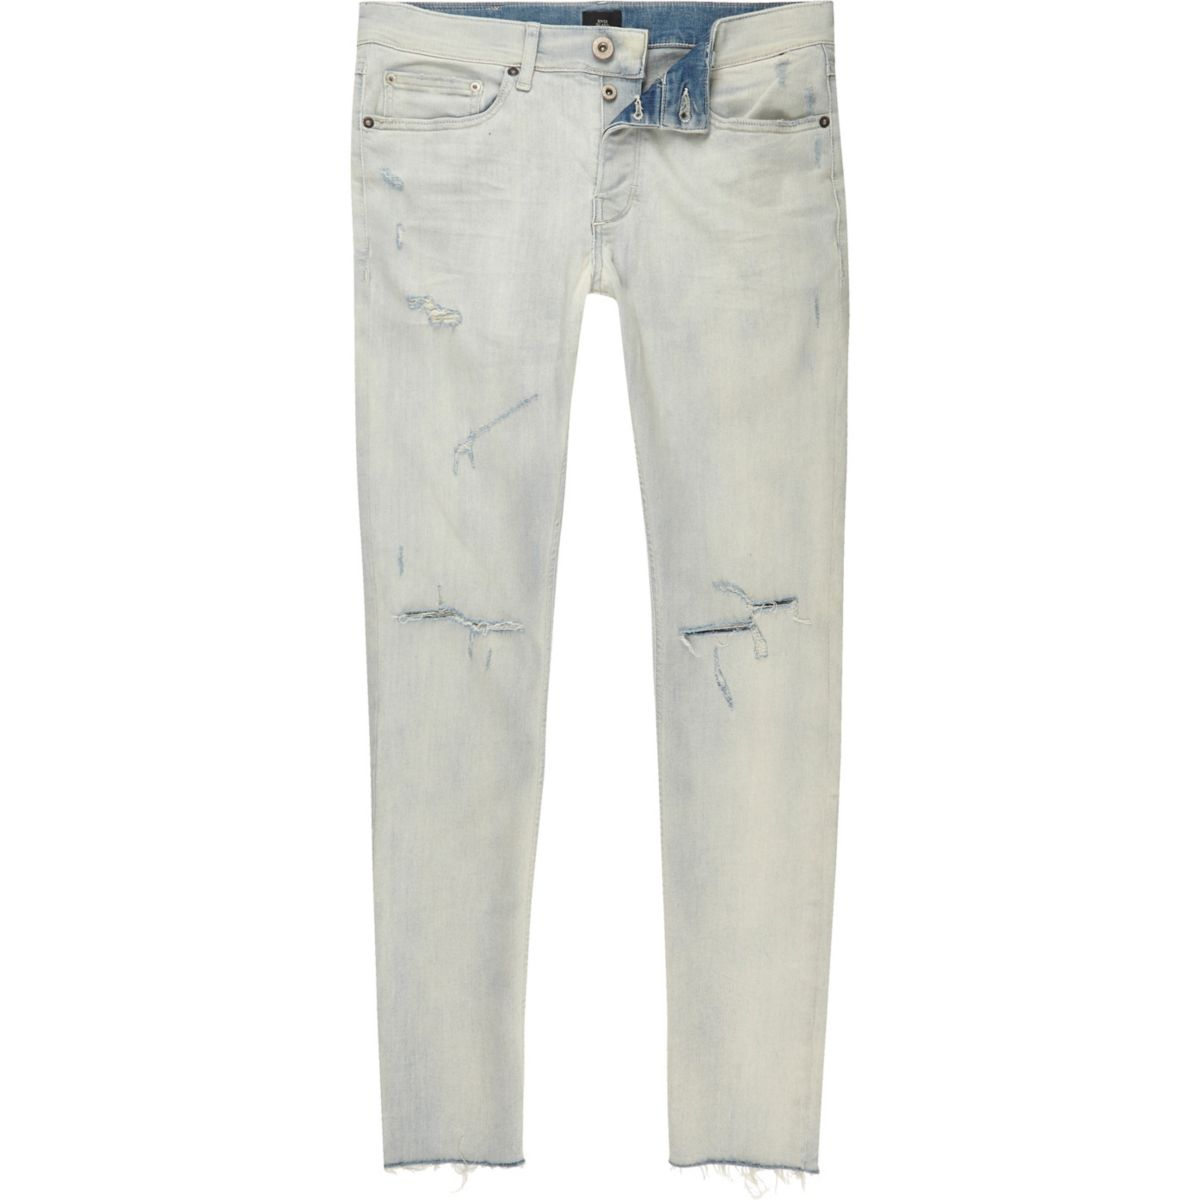 Light blue Sid ripped bleached skinny jeans